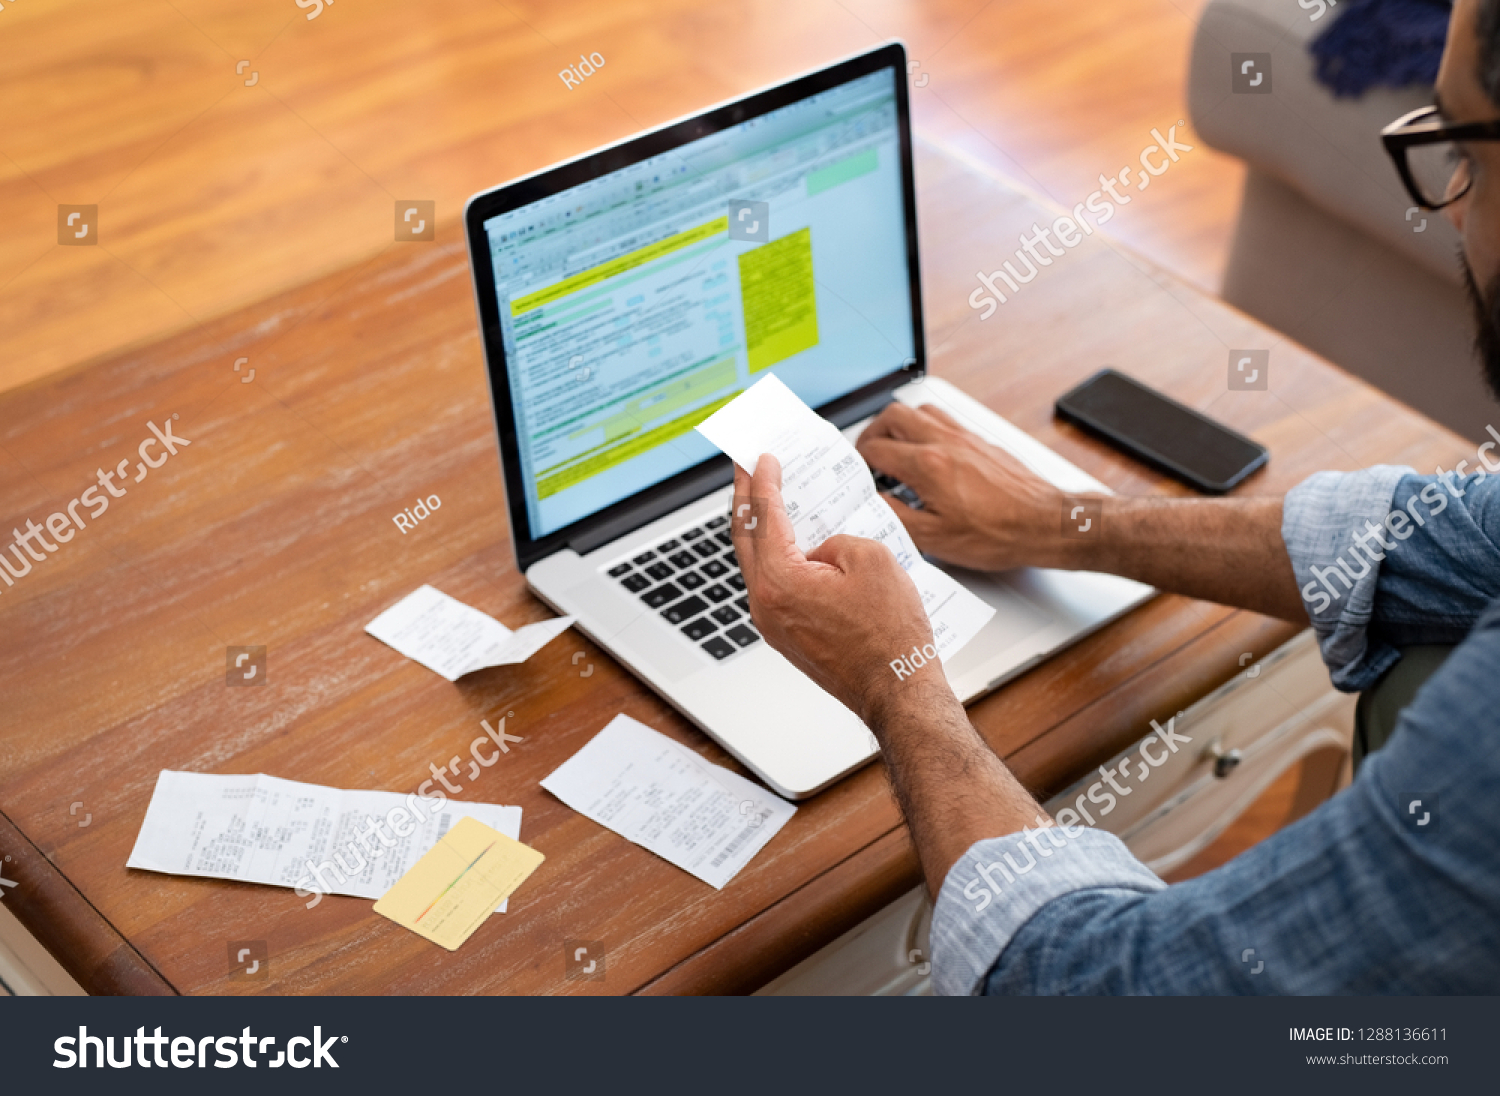 Hands of businessman analyzing invoice on laptop while checking bills. Rear view of latin man checking invoice while matching them on computer. Closeup of man hands calculating financial expenses. #1288136611